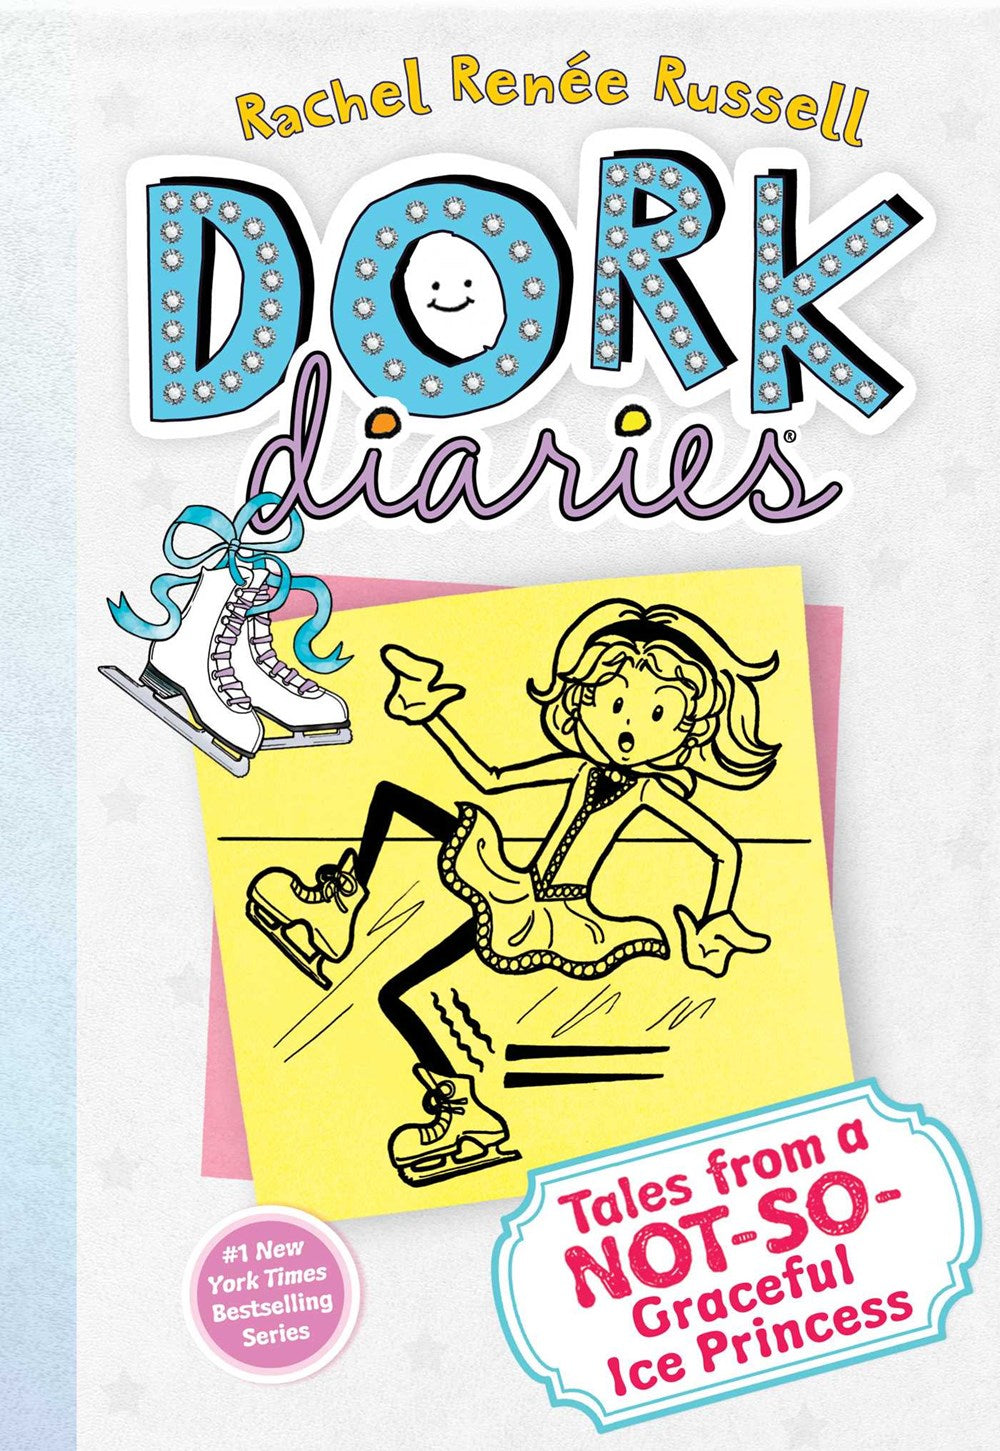 Tales from a Not-So-Graceful Ice Princess ( Dork Diaries #04 )